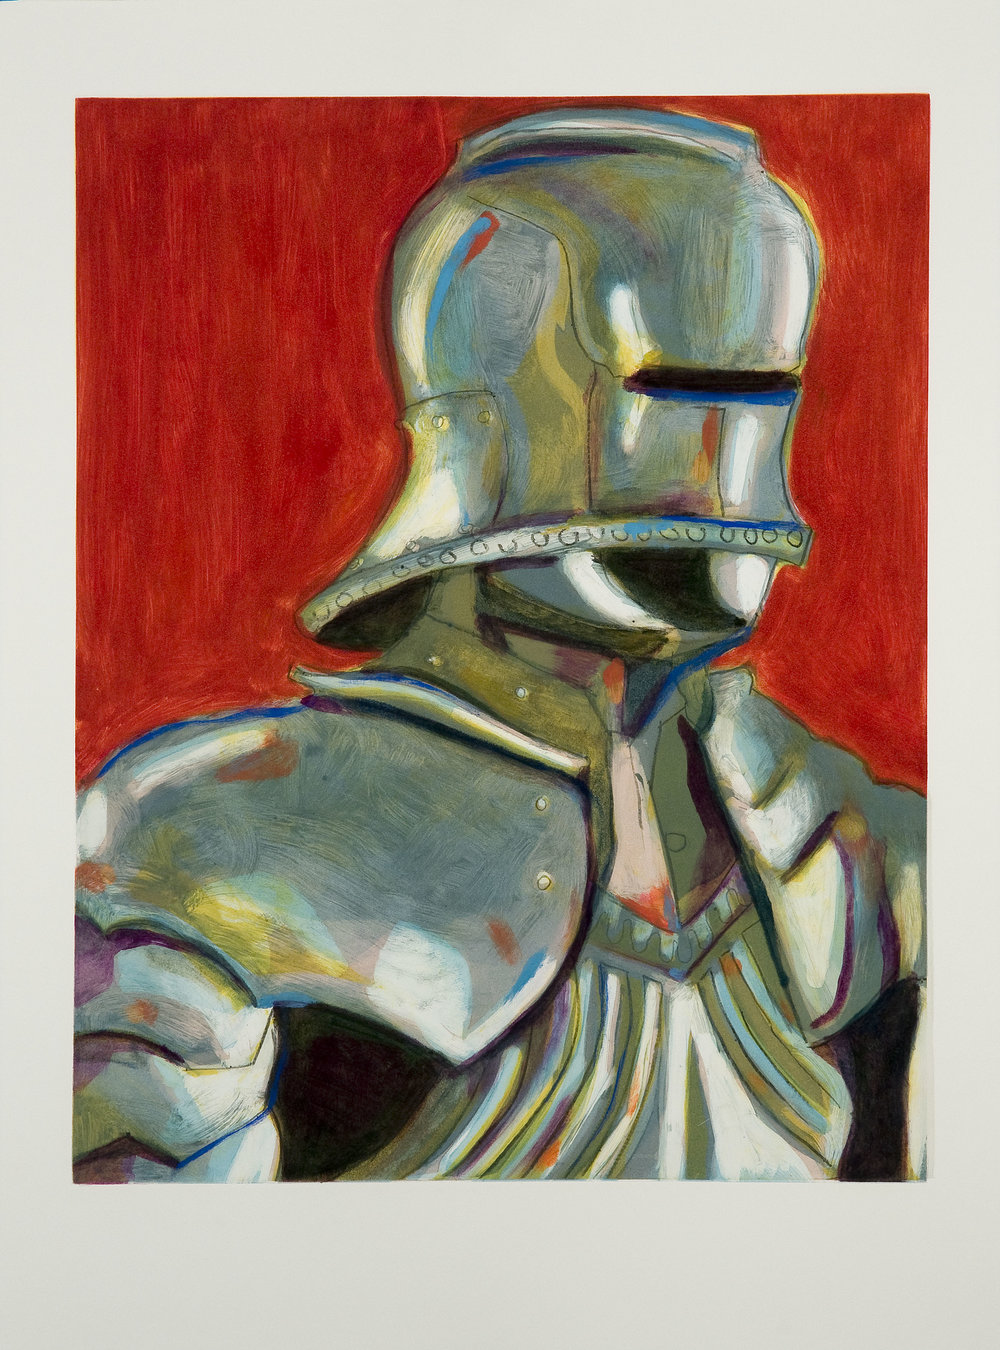 Self Portrait (Armor) (V) , 2008 Monotype Image size: 18.75 x 23.75 inches Paper size: 22 x 30 inches Series of 5